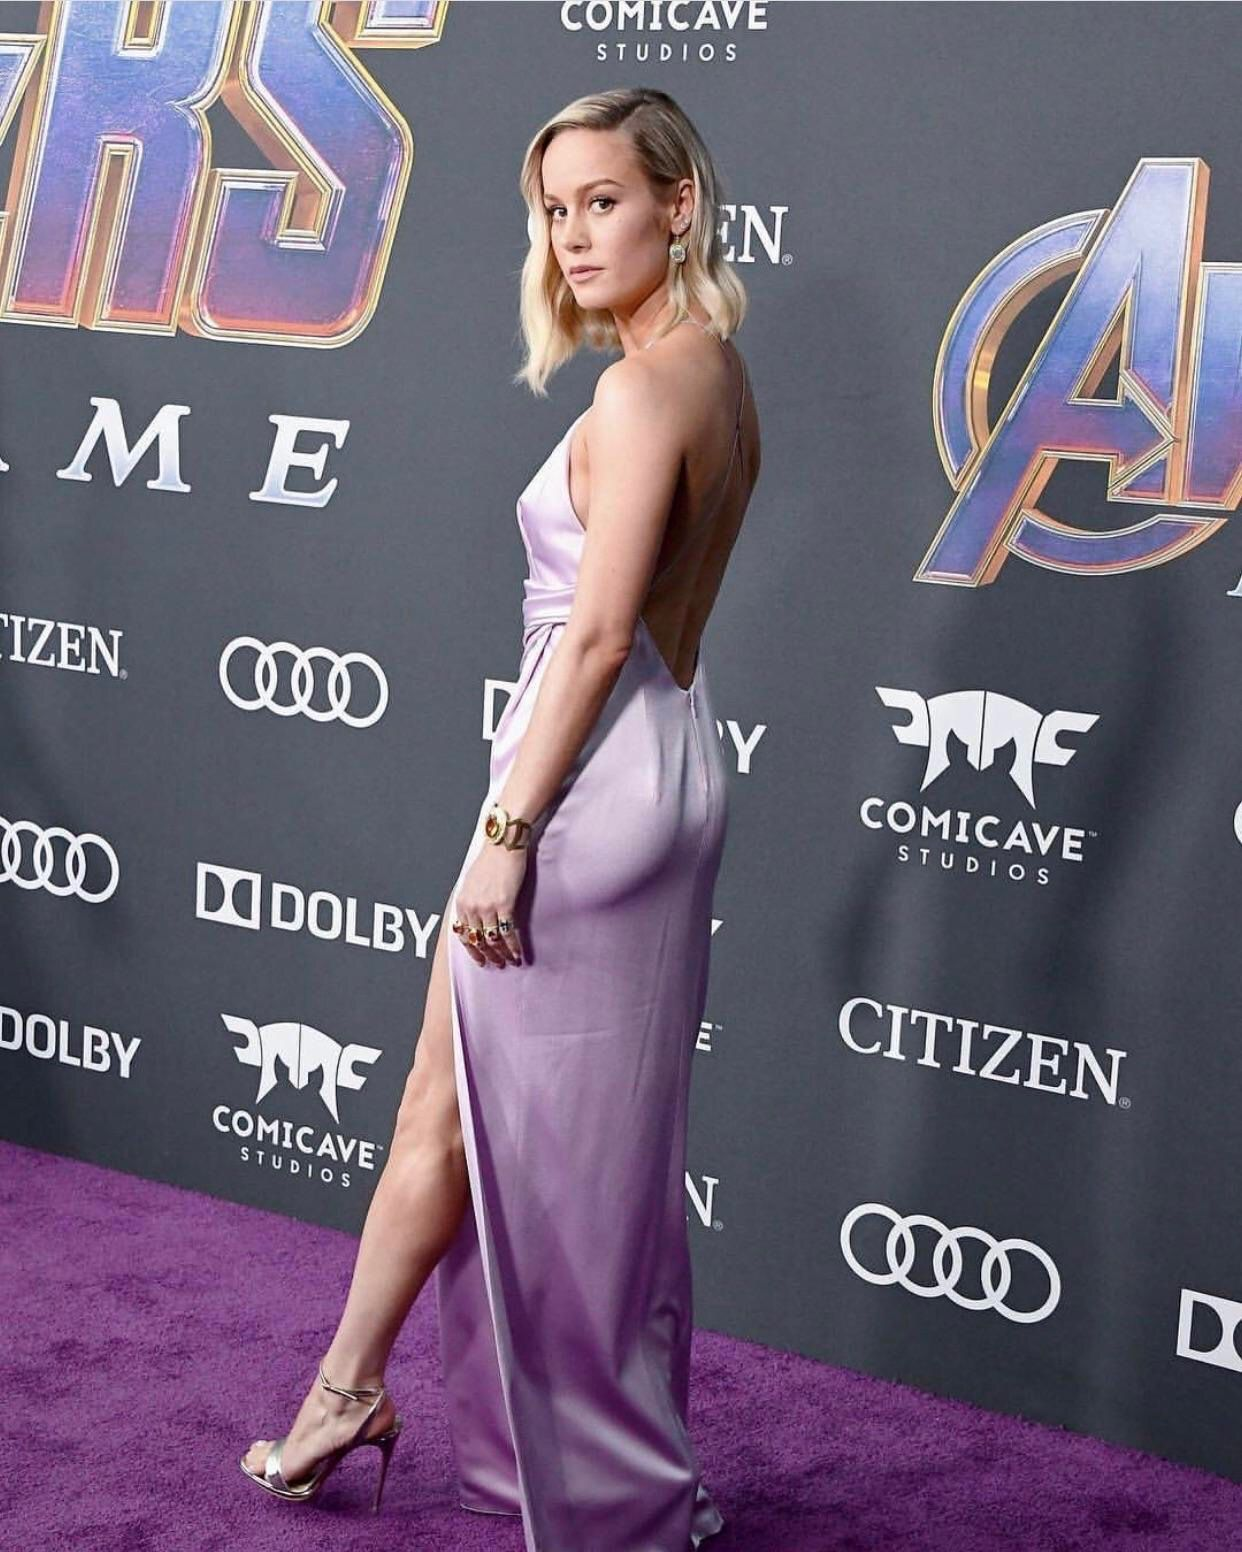 Actresses With Nice Asses photo 20